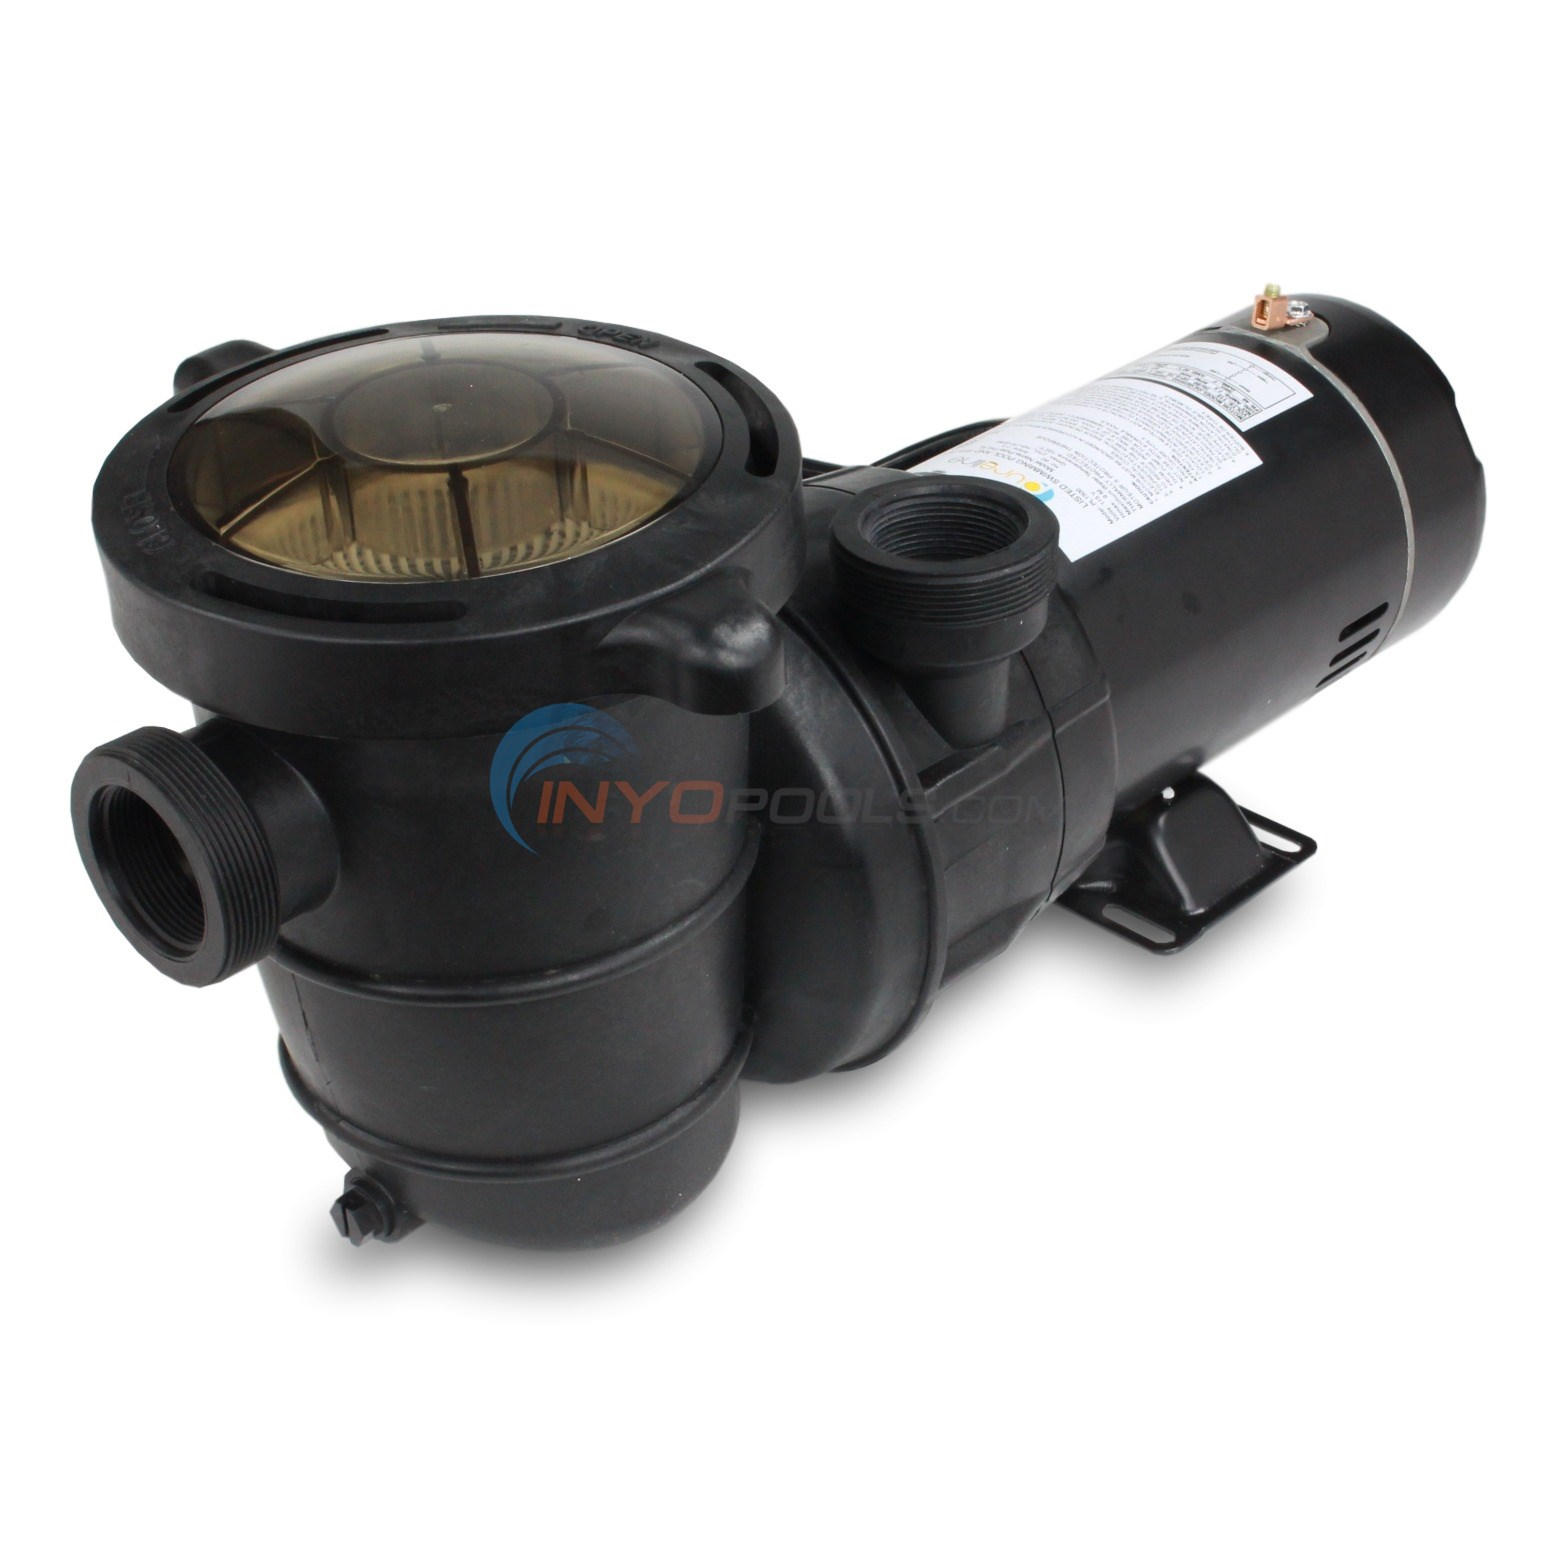 pureline pl1500 03?format=jpg&scale=both&anchor=middlecenter&autorotate=true&mode=pad&width=650&height=650 pureline 1 hp above ground pool pump ne6170b inyopools com  at bakdesigns.co